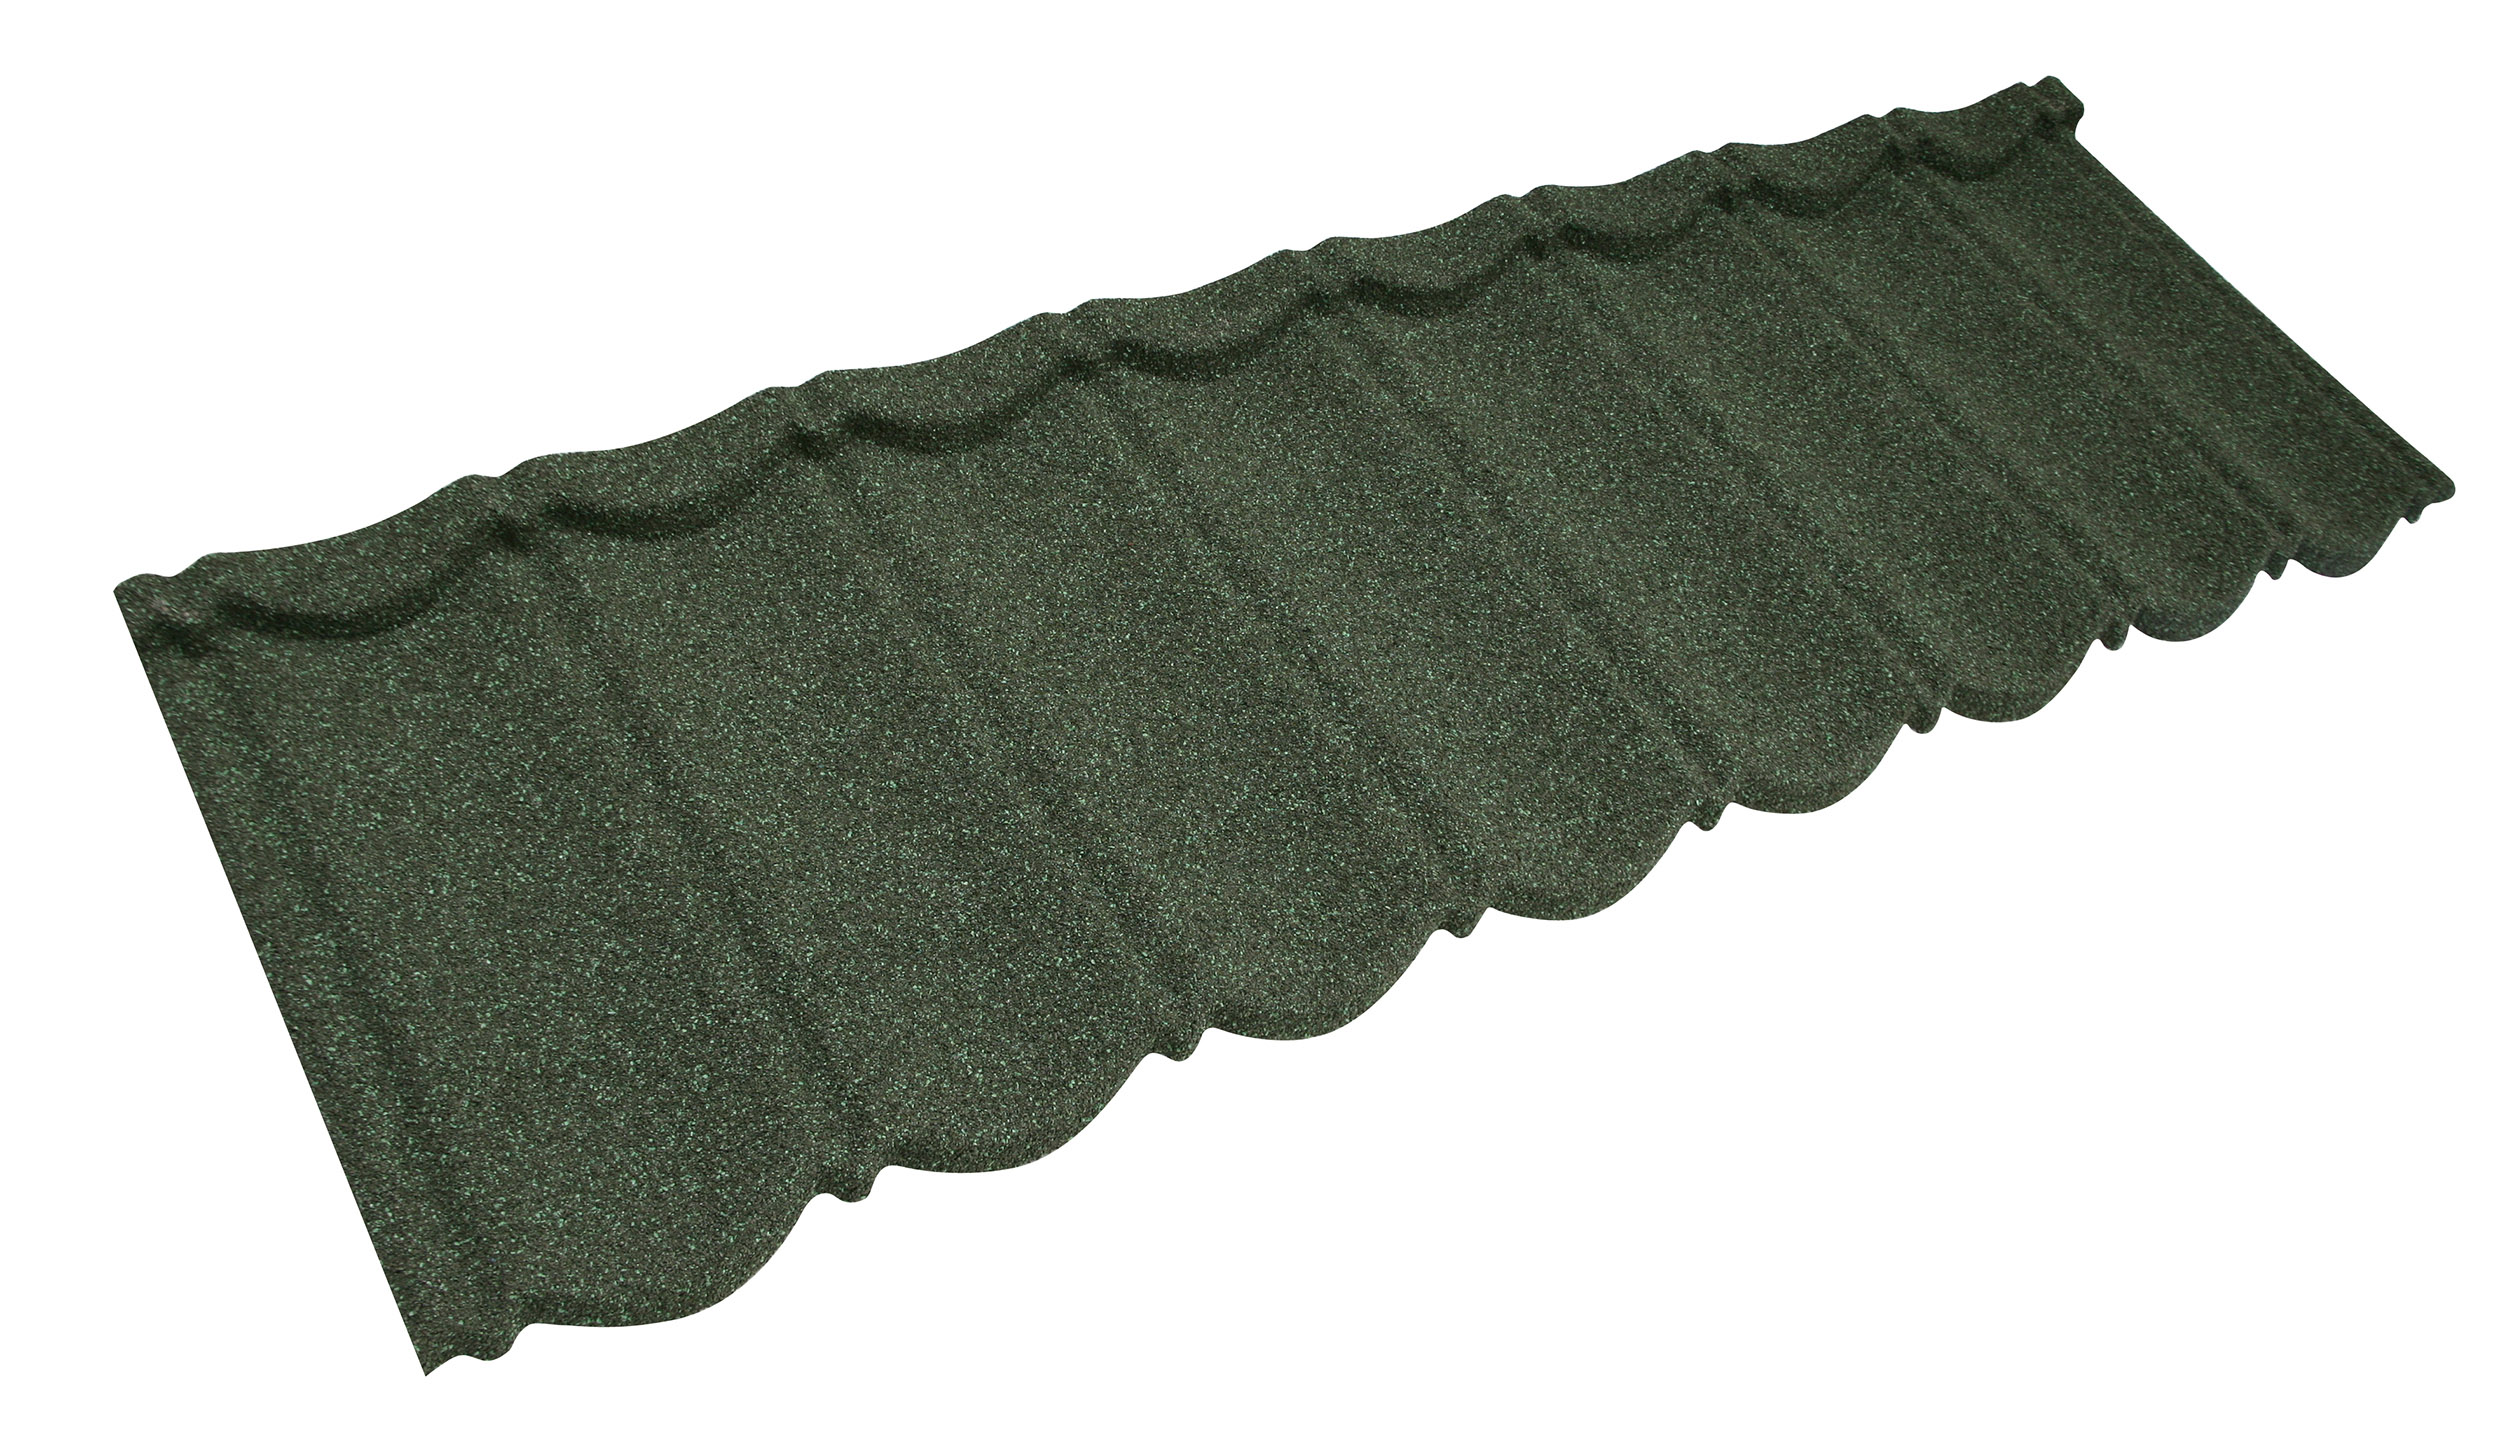 Metrotile Bond Lightweight Roofing Tile Profile in Green